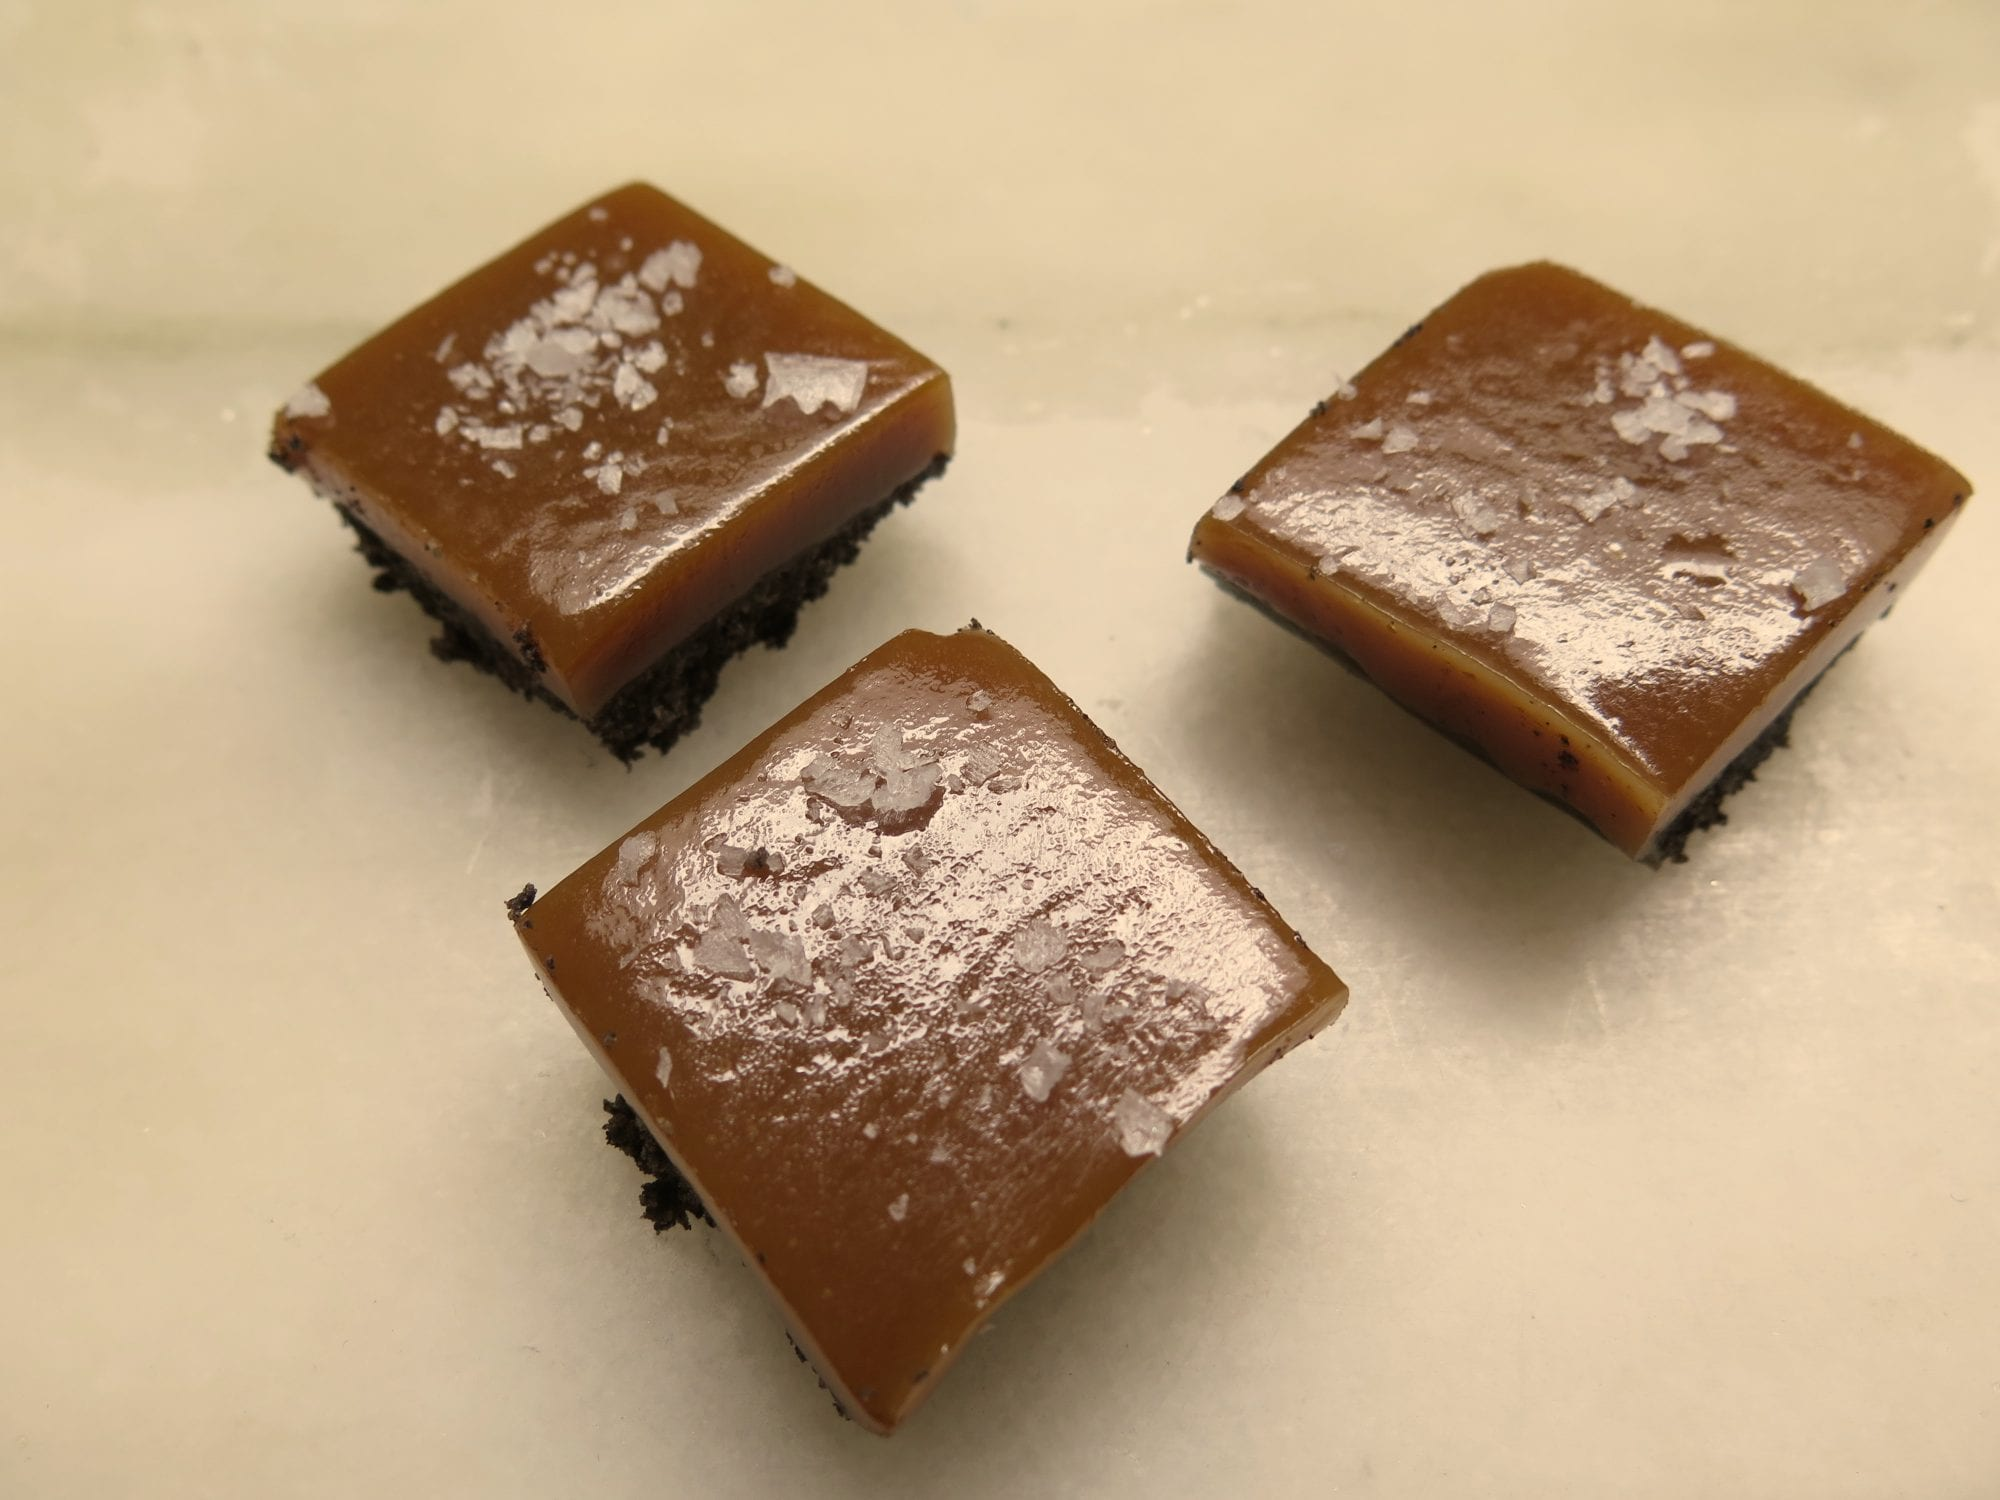 salty caramel bars with a black cocoa (saltine) crust and sea salt